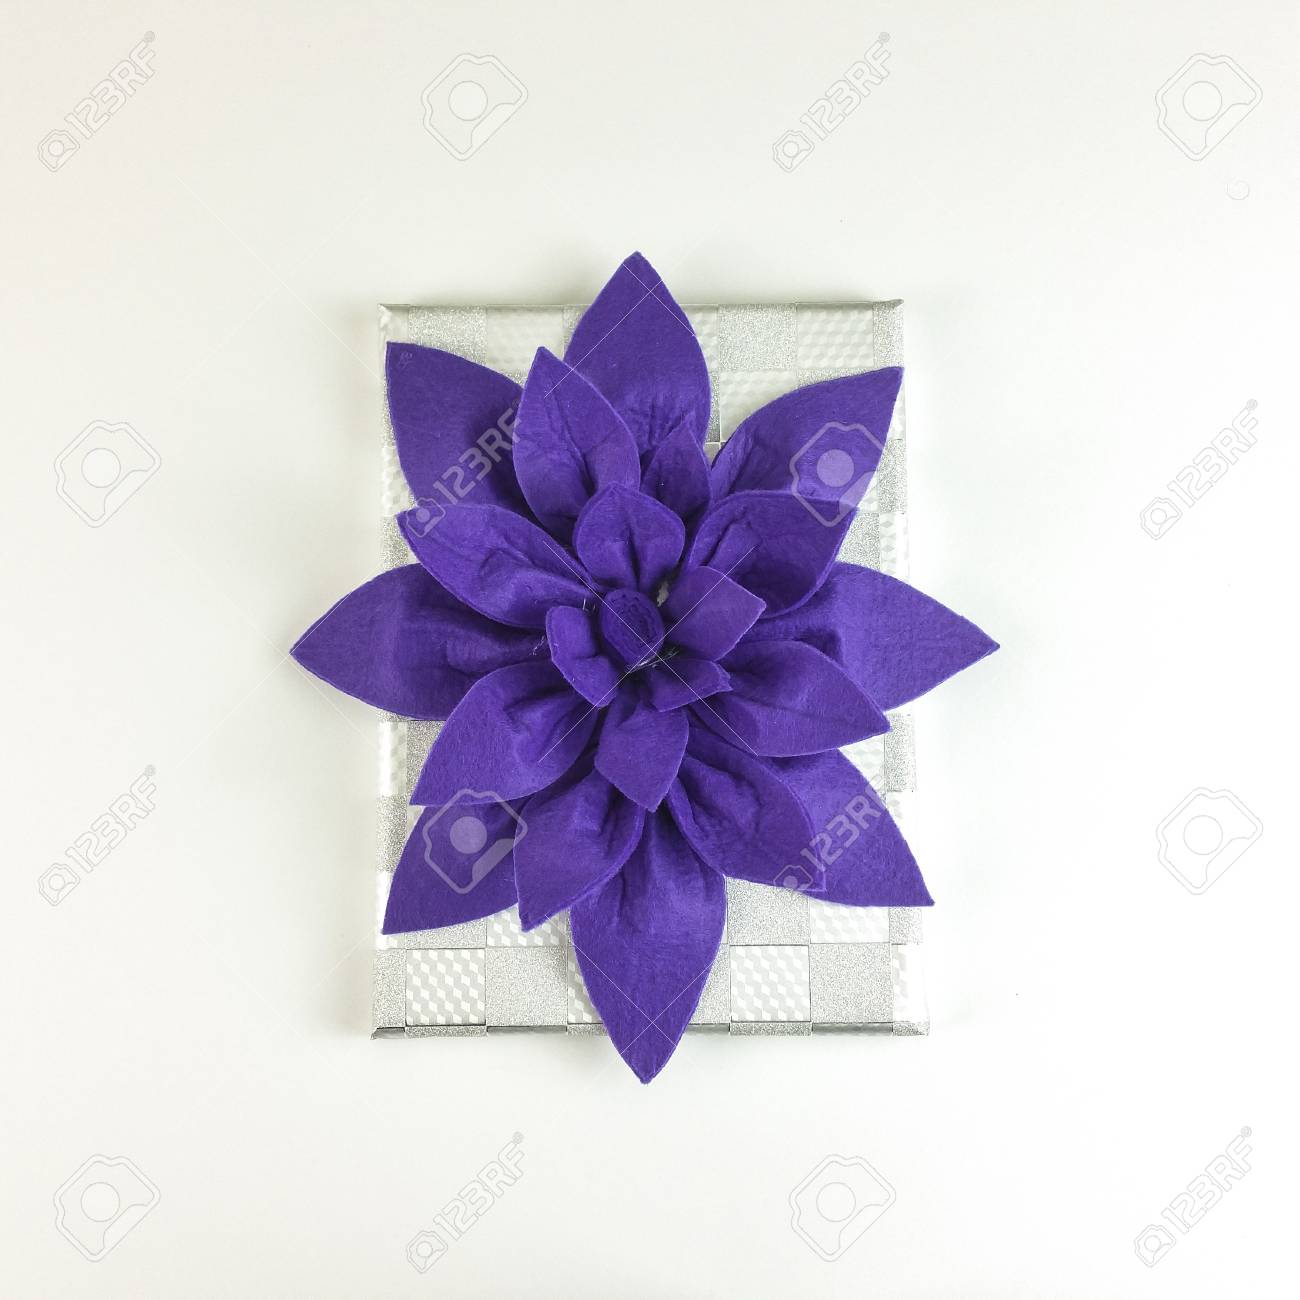 Homemade Felt Purple Flower Centerpiece With Cup Holders And Stock Photo Picture And Royalty Free Image Image 94969380